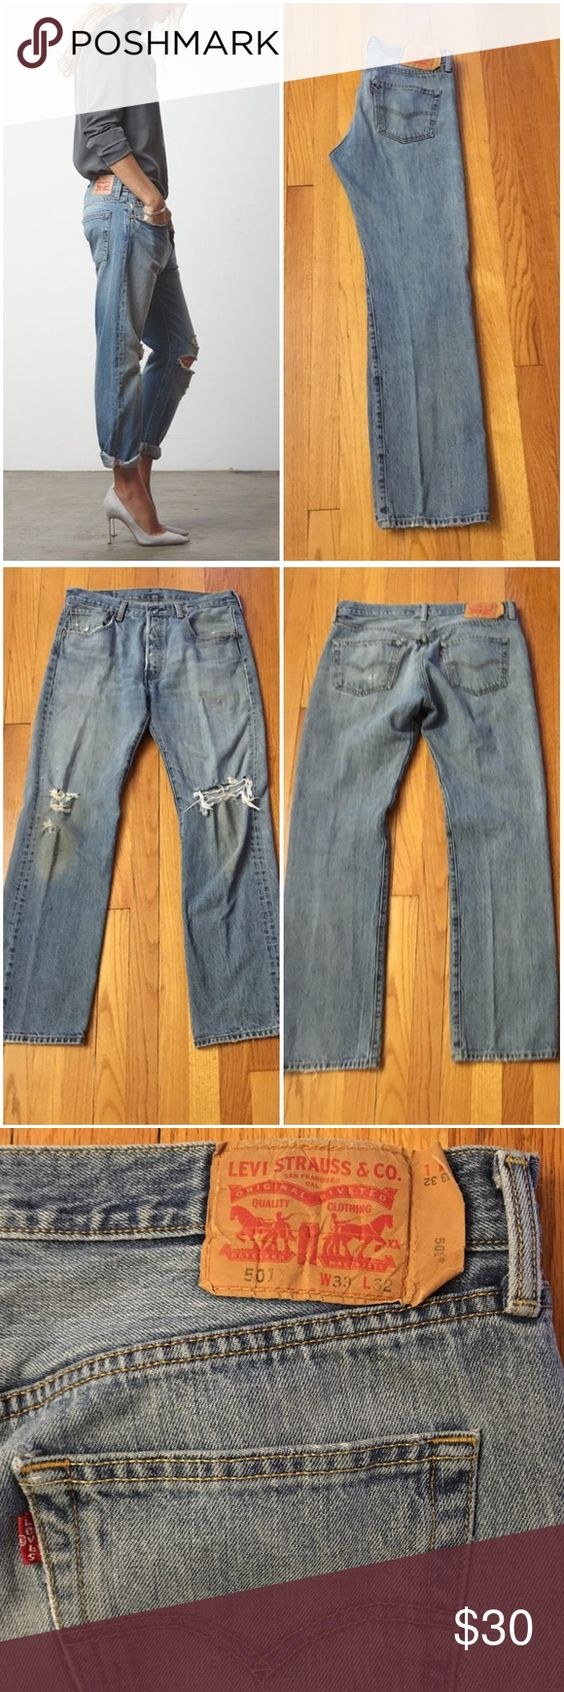 """Vintage Levi's 501 Jeans Style #: 501 Size/Fit Marked: 33x32 Size BEST FIT: 29/8 Apx. measurements when laying flat: 15.75"""" across waistband 11.25"""" front rise  30"""" inseam 21"""" across bottom of back pockets Condition: distressing/stains at knee area. Adds to vintage character. 5-button fly. 🎉Check out my closet for other vintage denim in a VARIETY of sizes. Left cover photo is style inspo, rest are mine. Price is firm so bundle for a discount!! Levi's Jeans"""